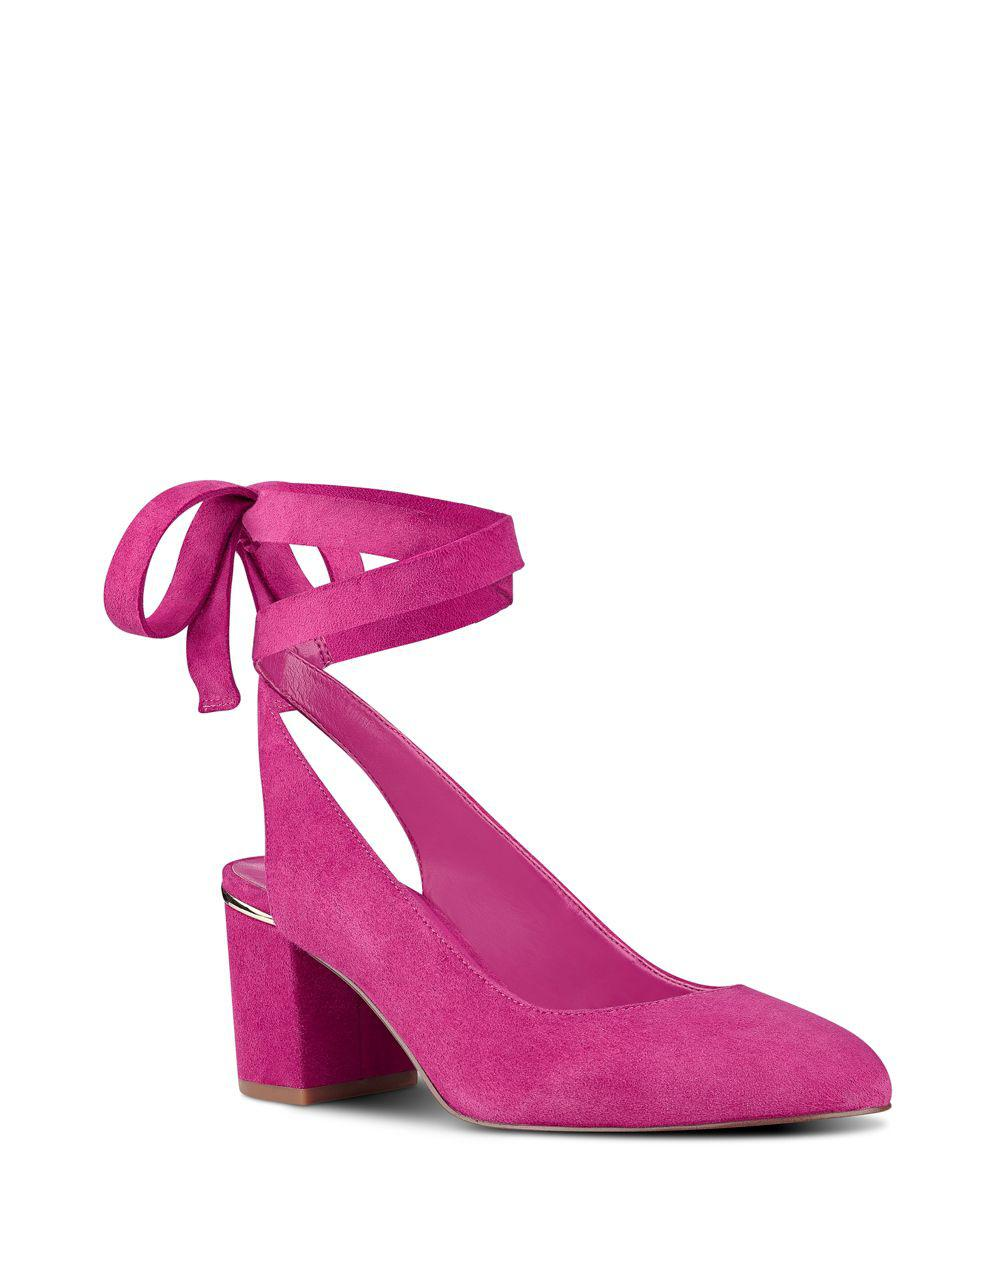 f9300a5a2d Nine West Andrea Ankle Wrap Suede Pumps in Pink - Save 36% - Lyst